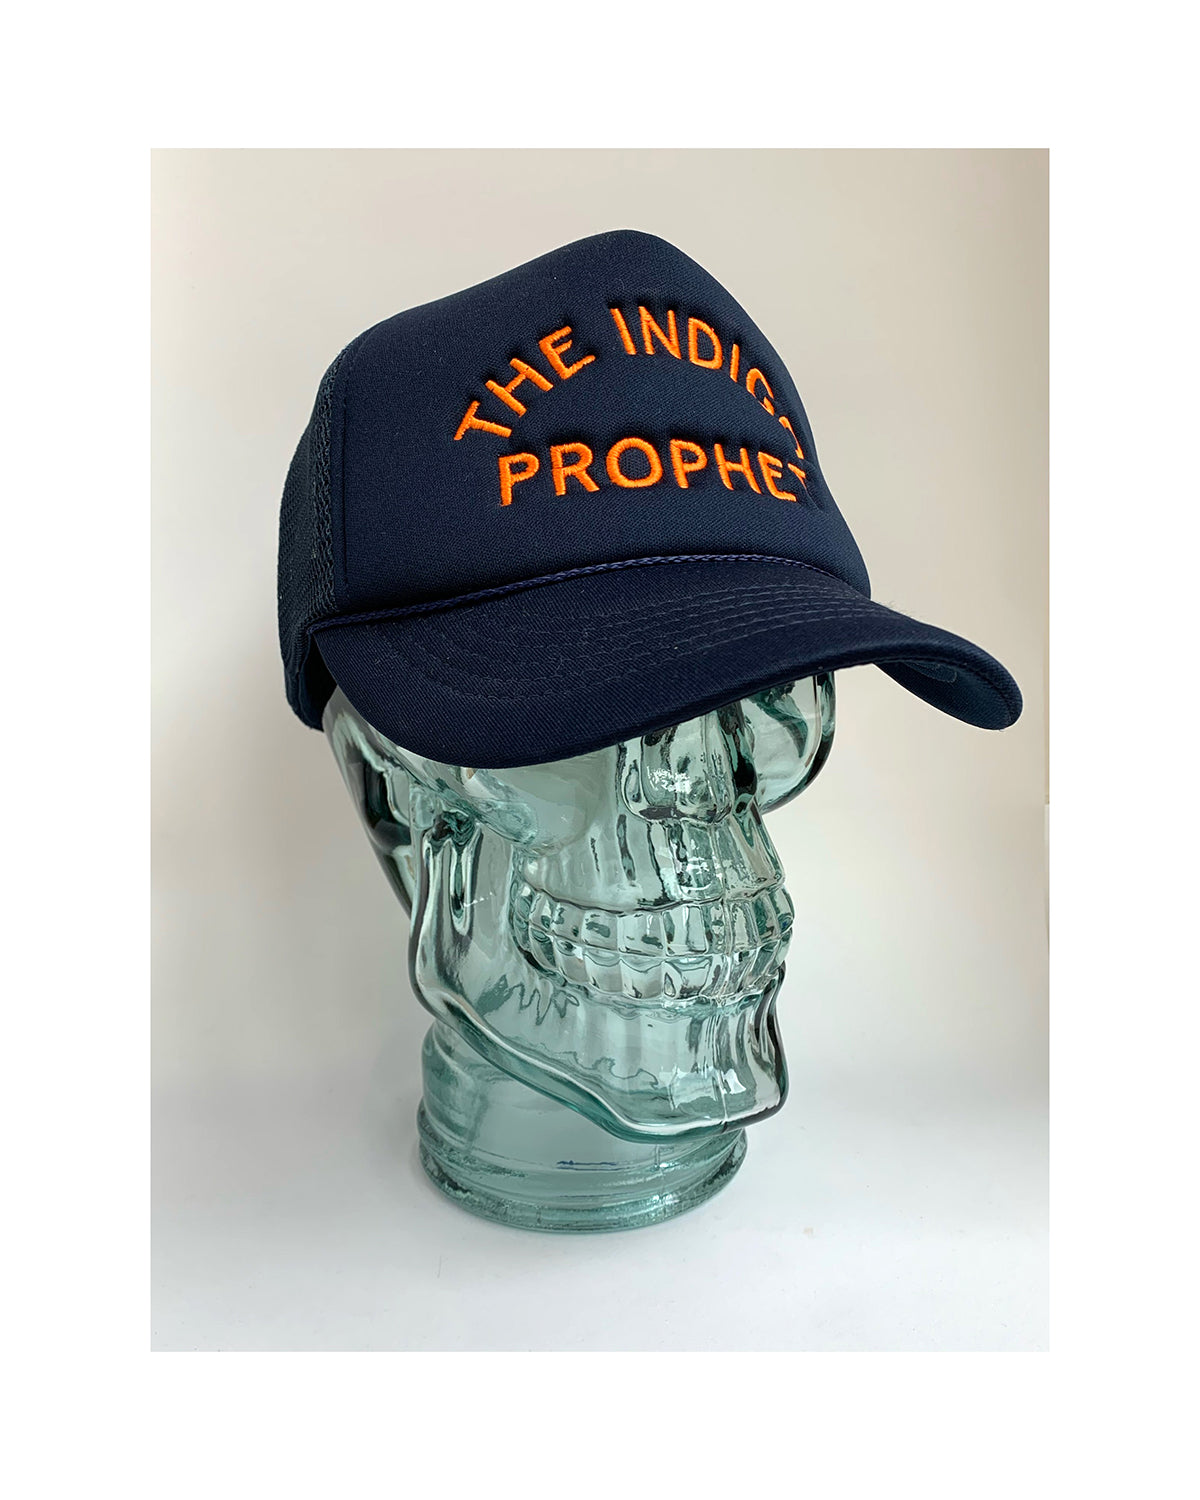 Glass mannequin skull head on white background  wearing a trucker style hat in blue aka indigo with The Indigo Prophet stitched on the front in orange.